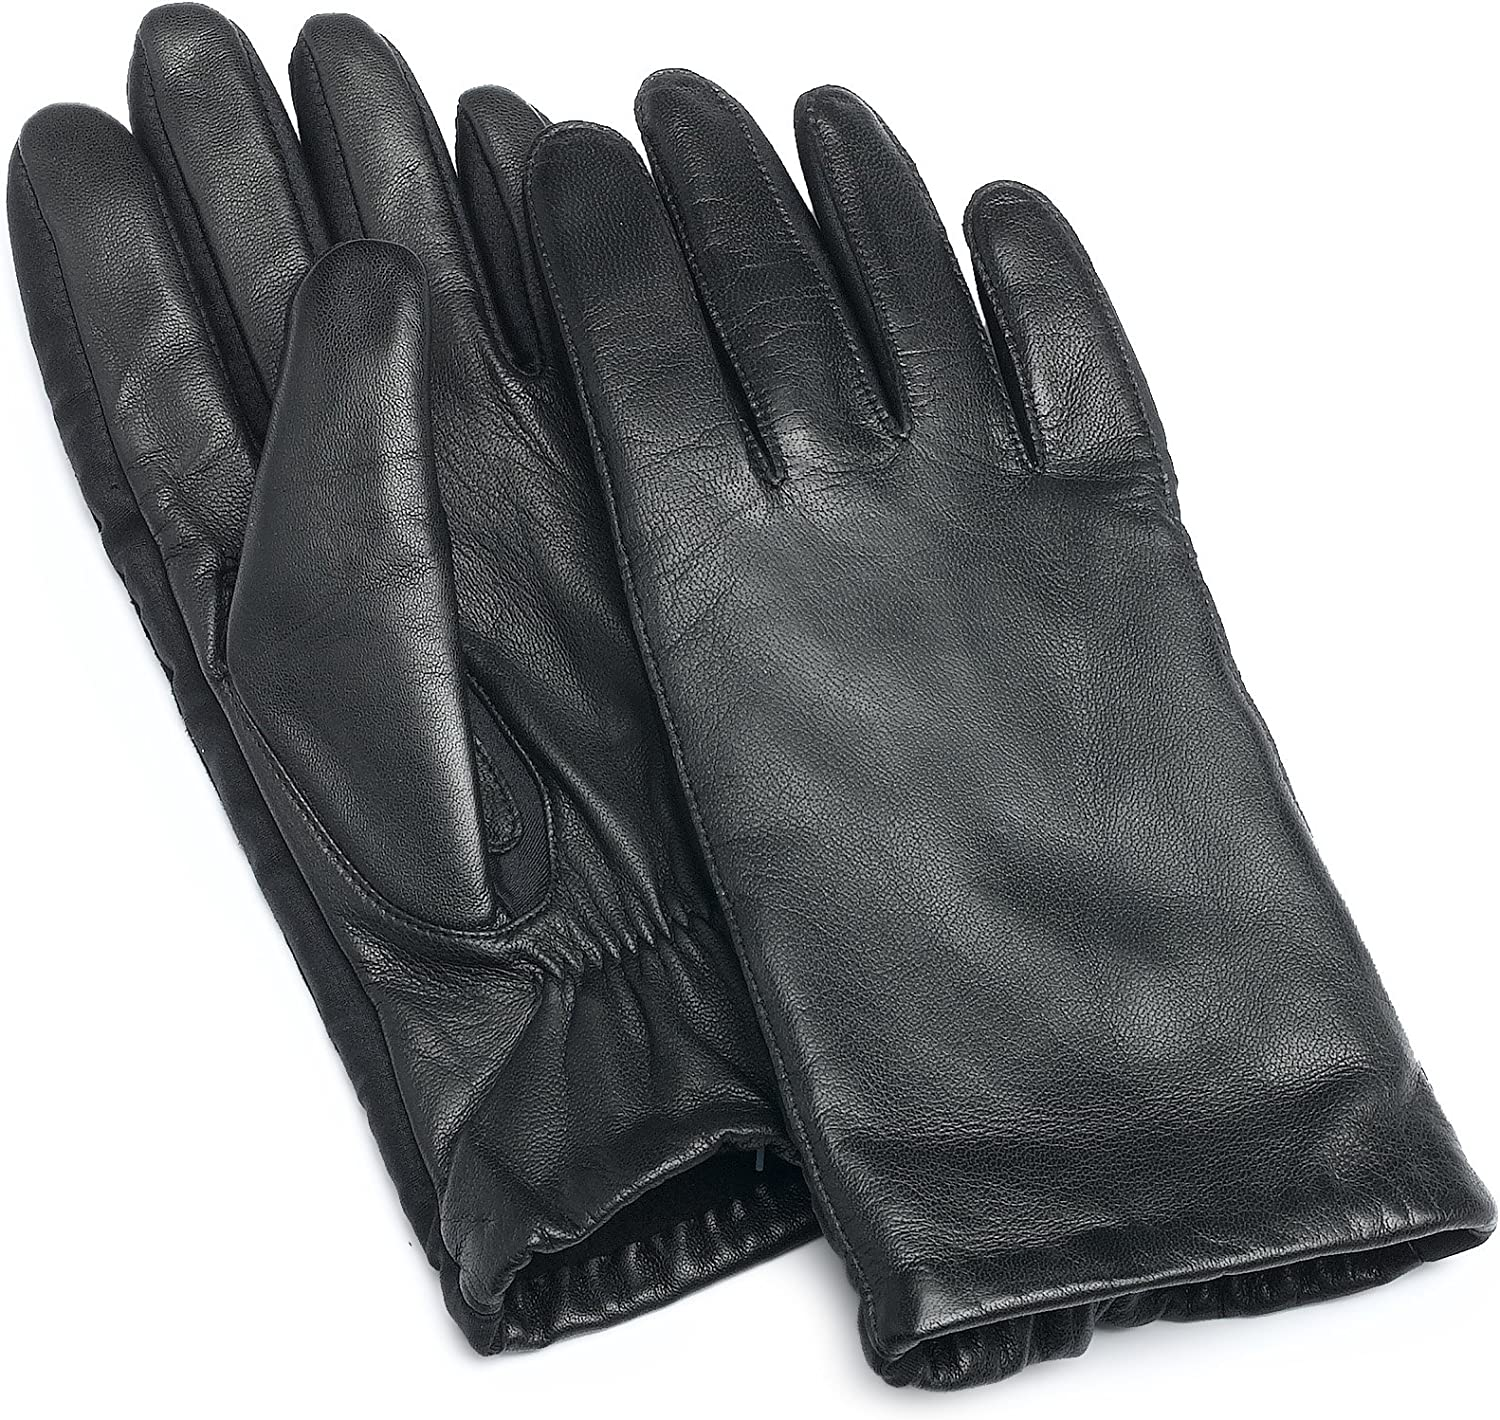 Isotoner Women's Stretch Leather 2.5 Button Glove